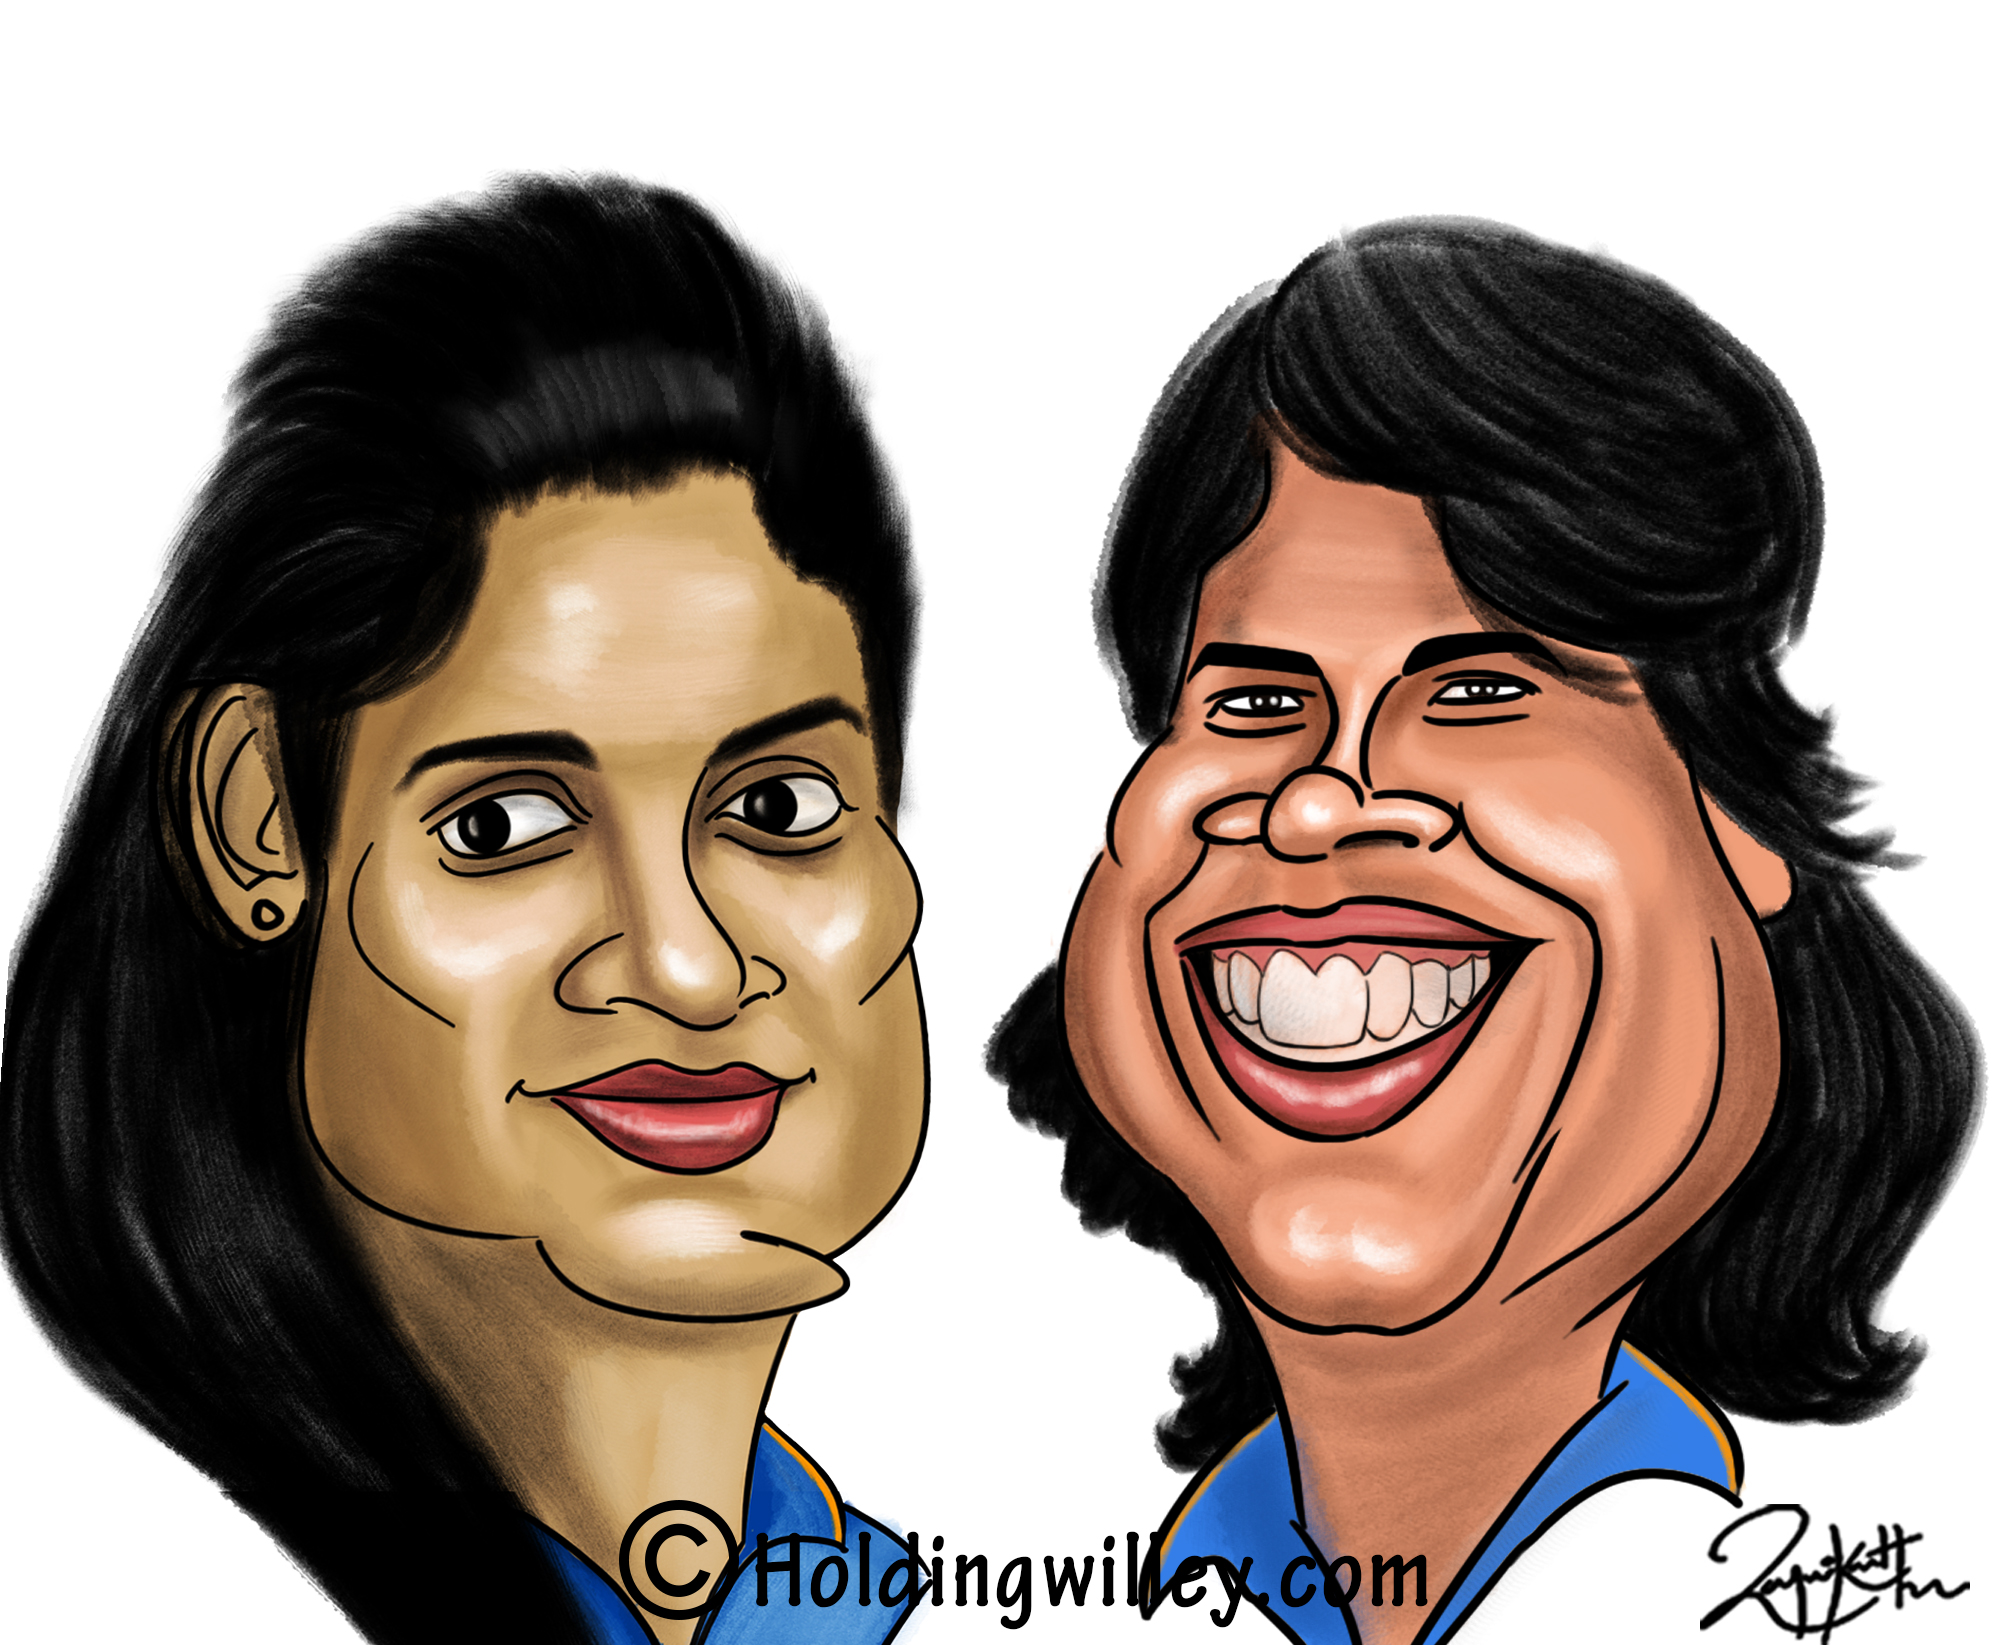 Mithali_Raj_Jhulan_Goswami_India_Women's_Cricket